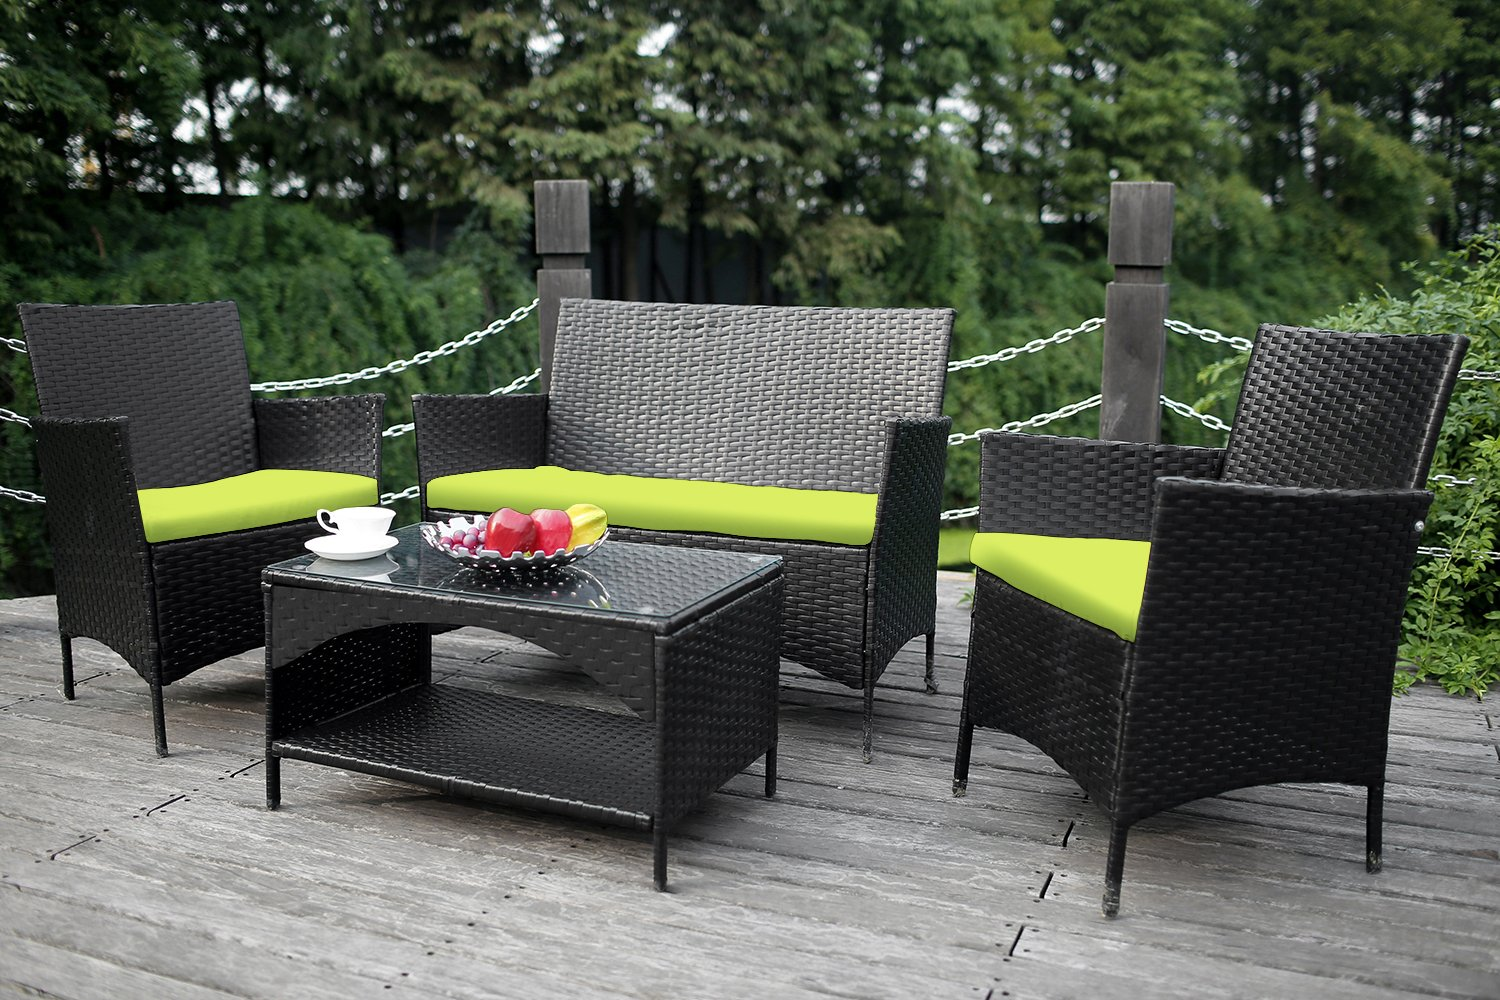 Amazon.com Merax 4-piece Outdoor PE Rattan Wicker Sofa and Chairs Set Rattan Patio Garden Furniture Set (Cushion Green) Garden u0026 Outdoor & Amazon.com: Merax 4-piece Outdoor PE Rattan Wicker Sofa and Chairs ...